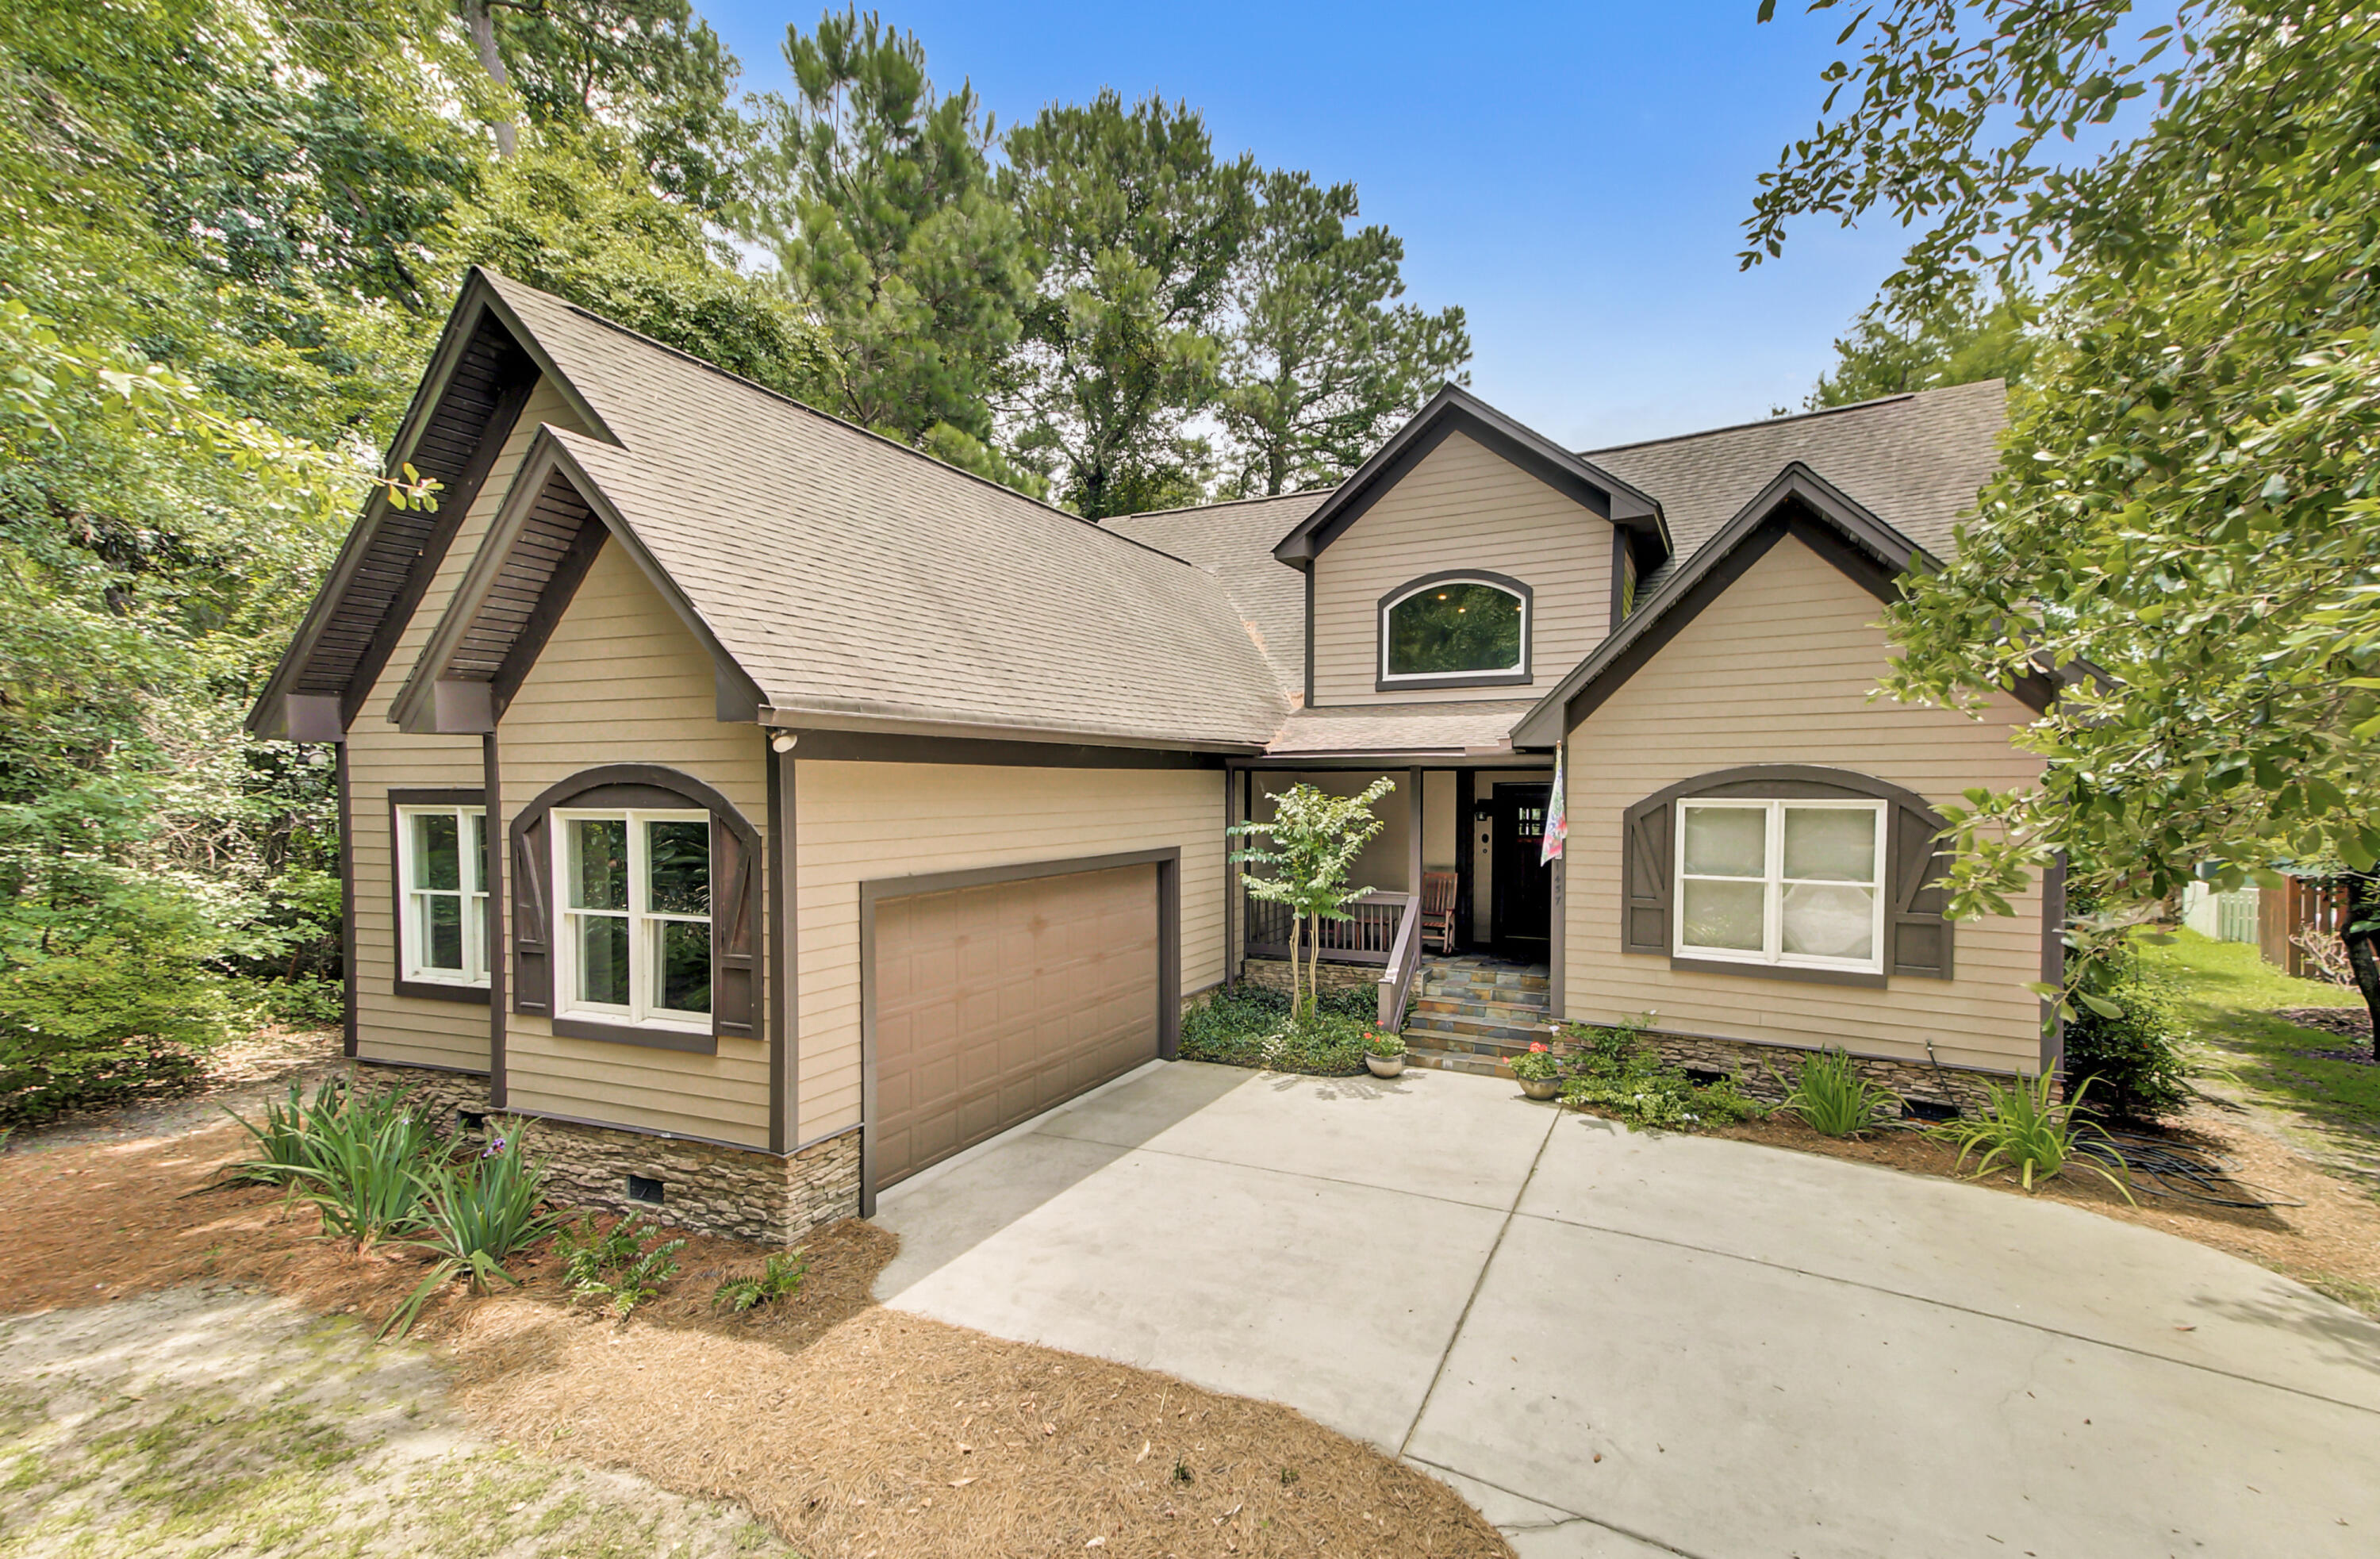 Shell Point Homes For Sale - 1457 Appling, Mount Pleasant, SC - 4